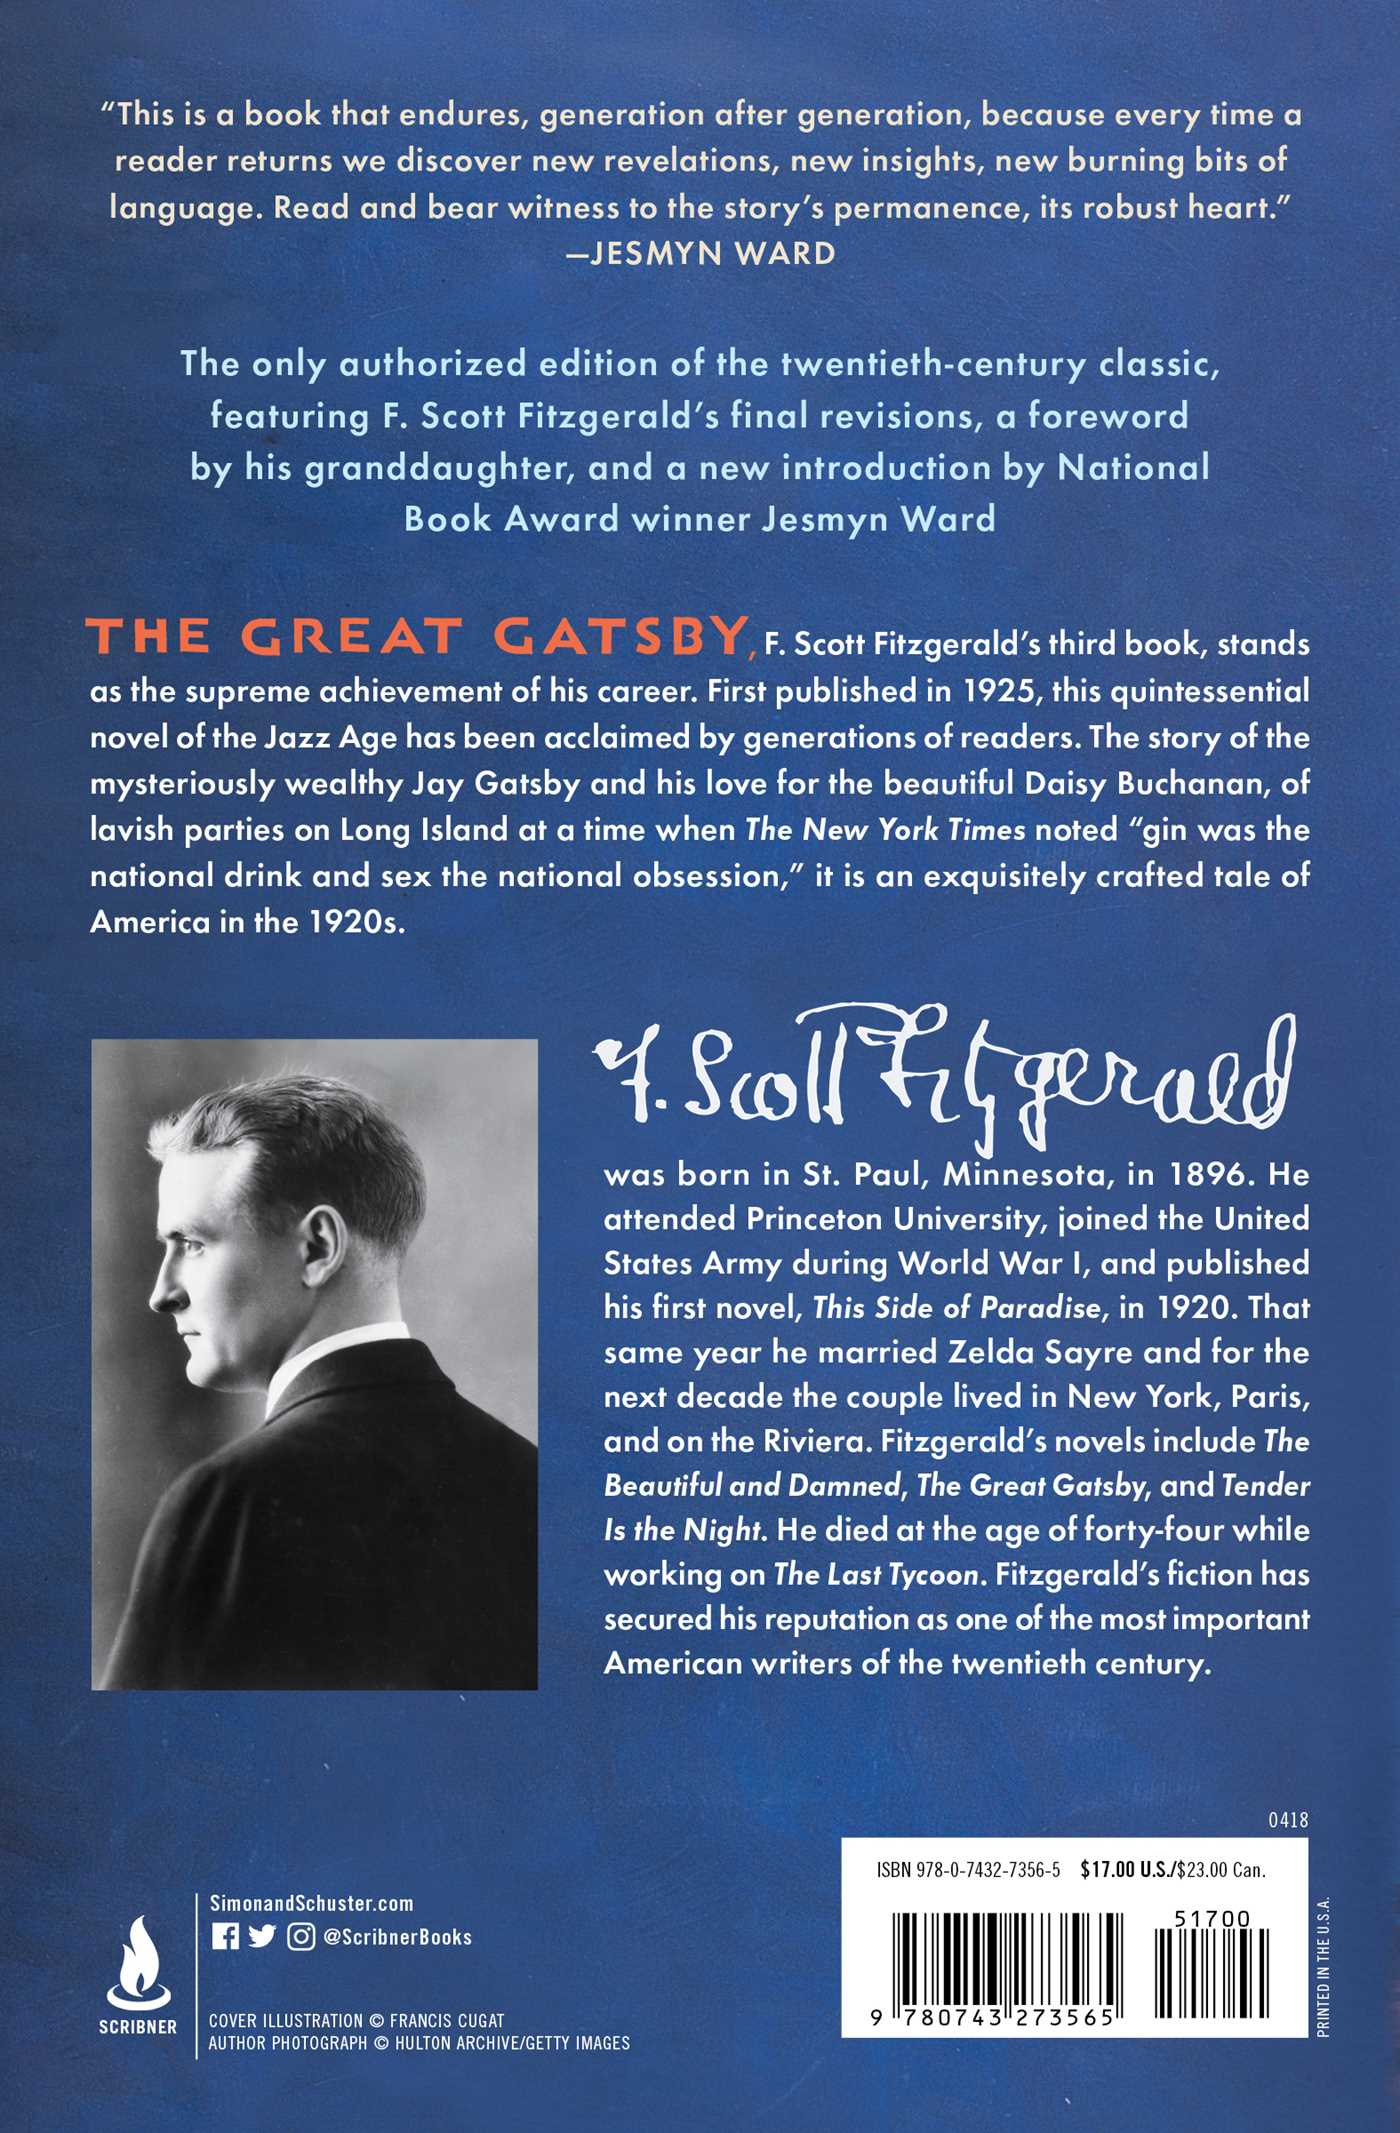 A summary of the great gatsby by f scott fitzgerald